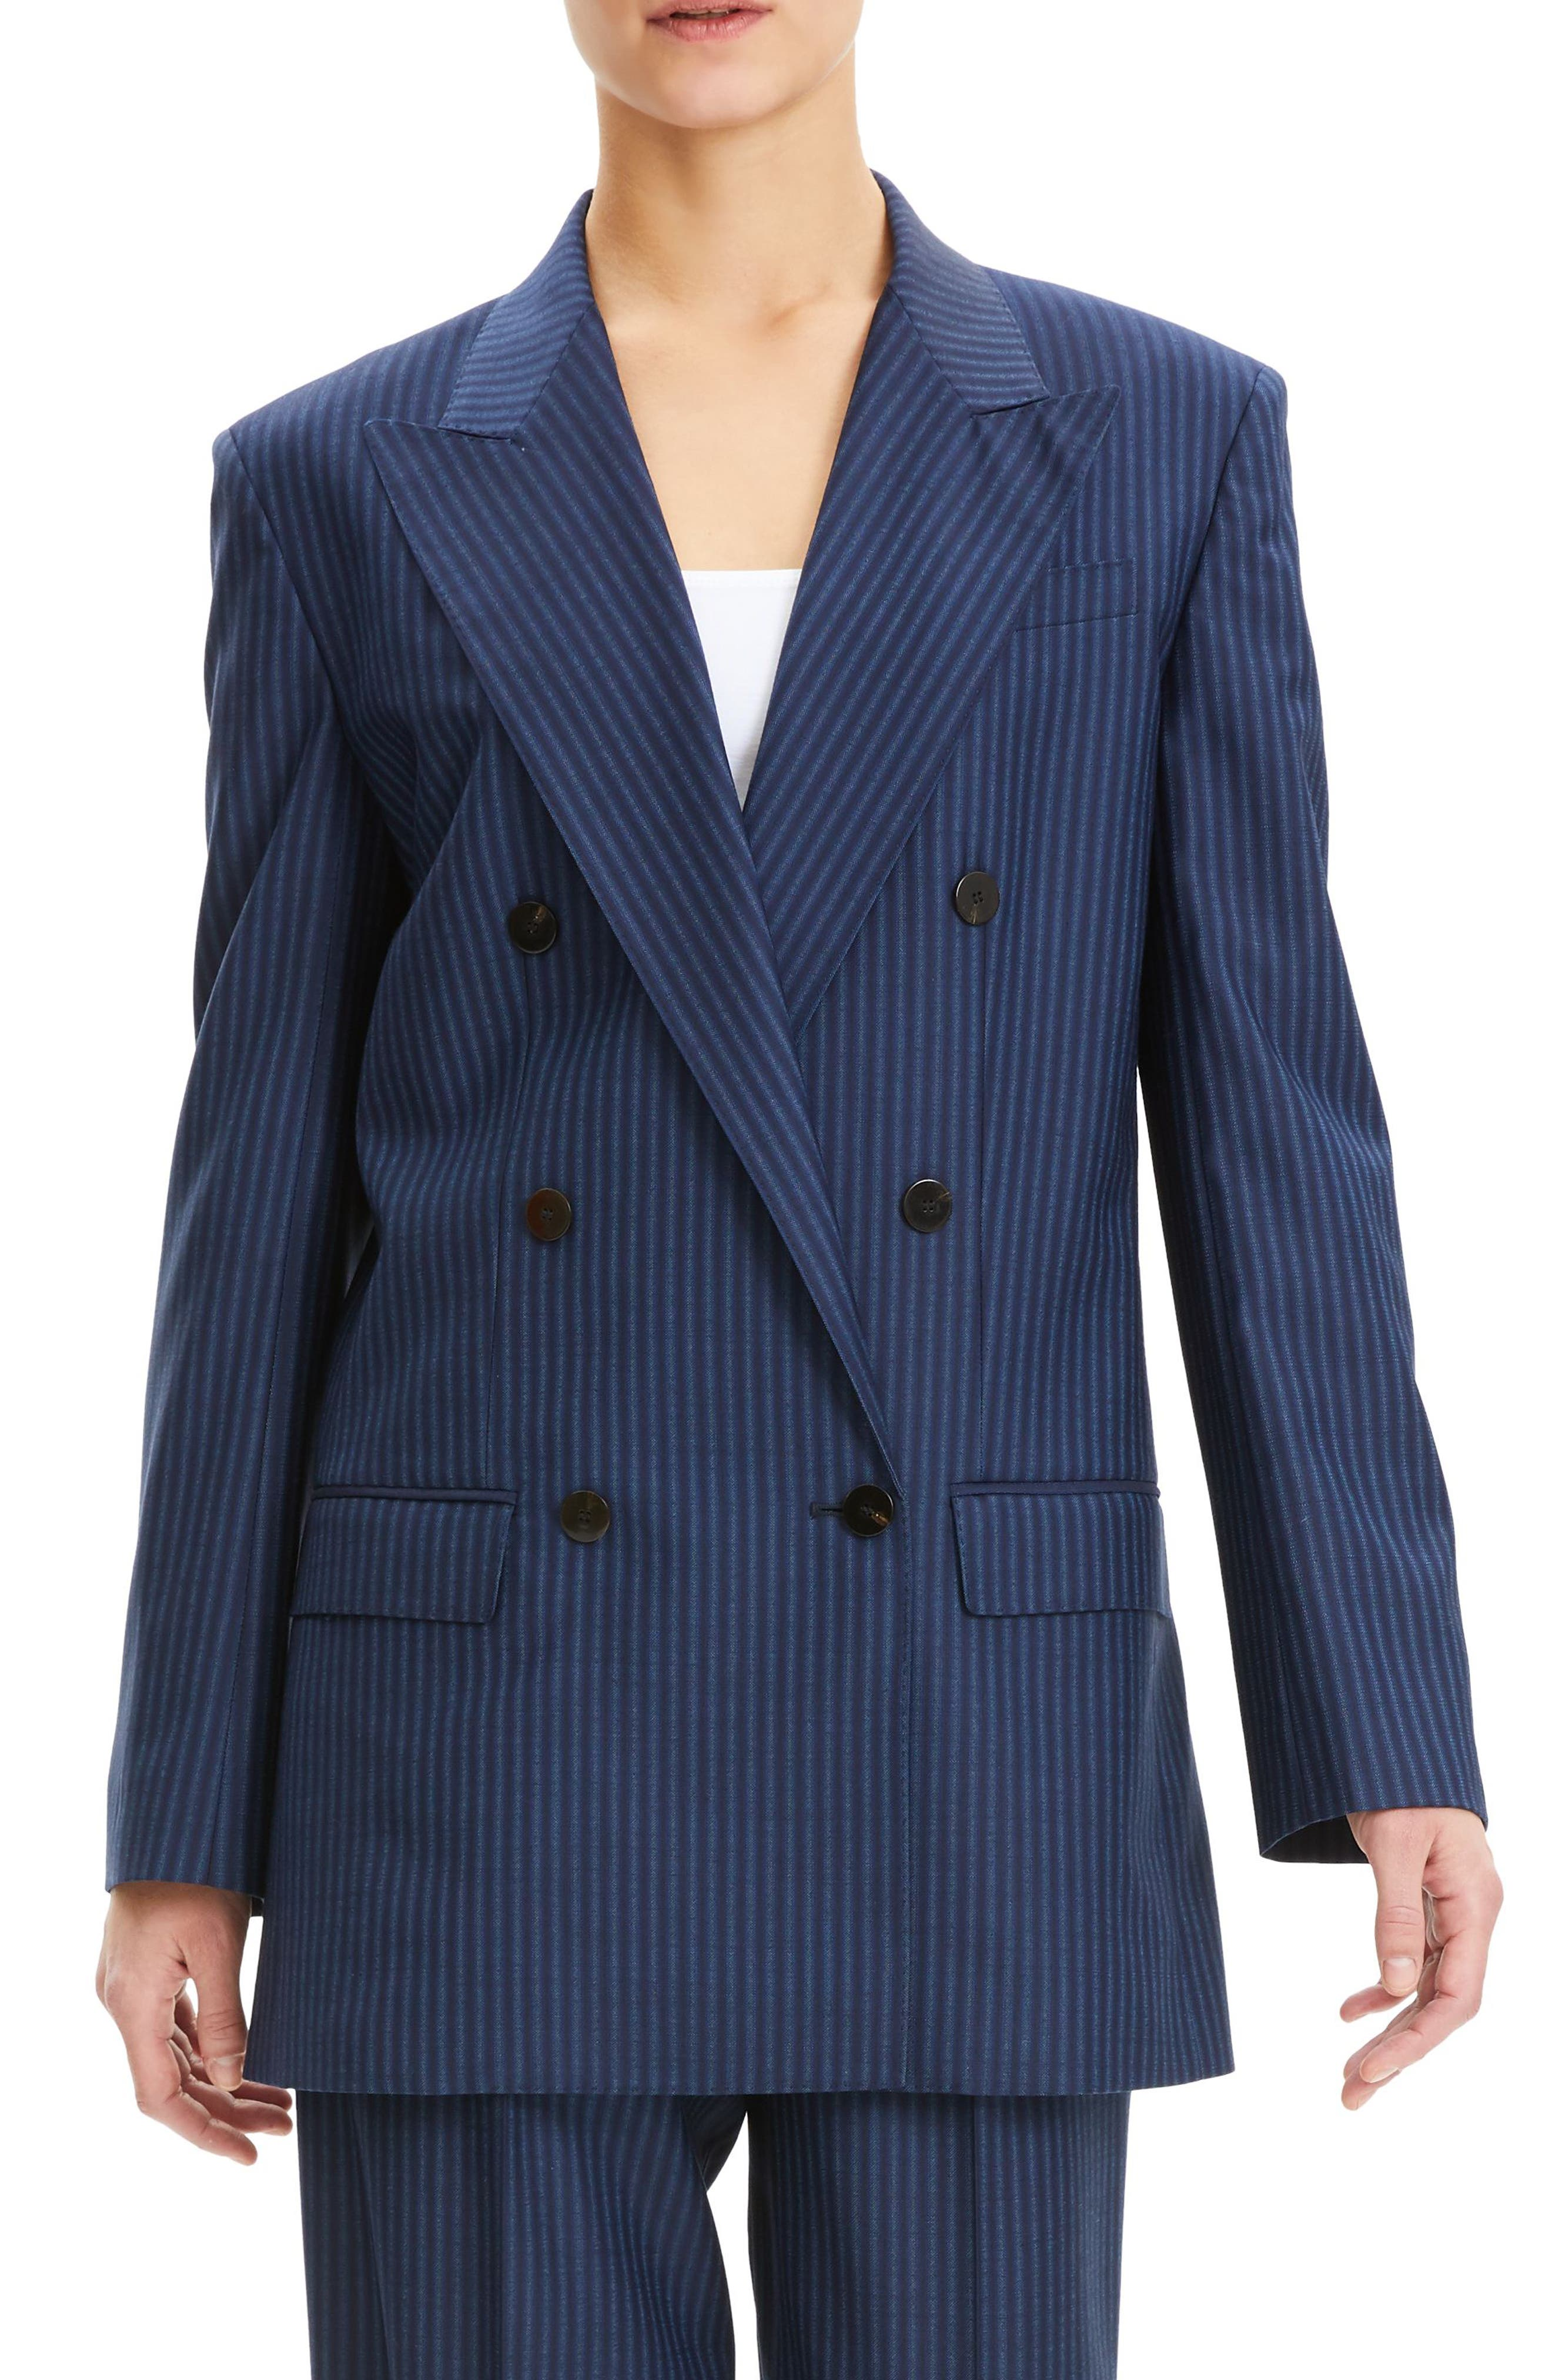 THEORY Pale Stripe Double Breasted Wool Jacket, Main, color, NAVY SAPPHIRE STRIPE